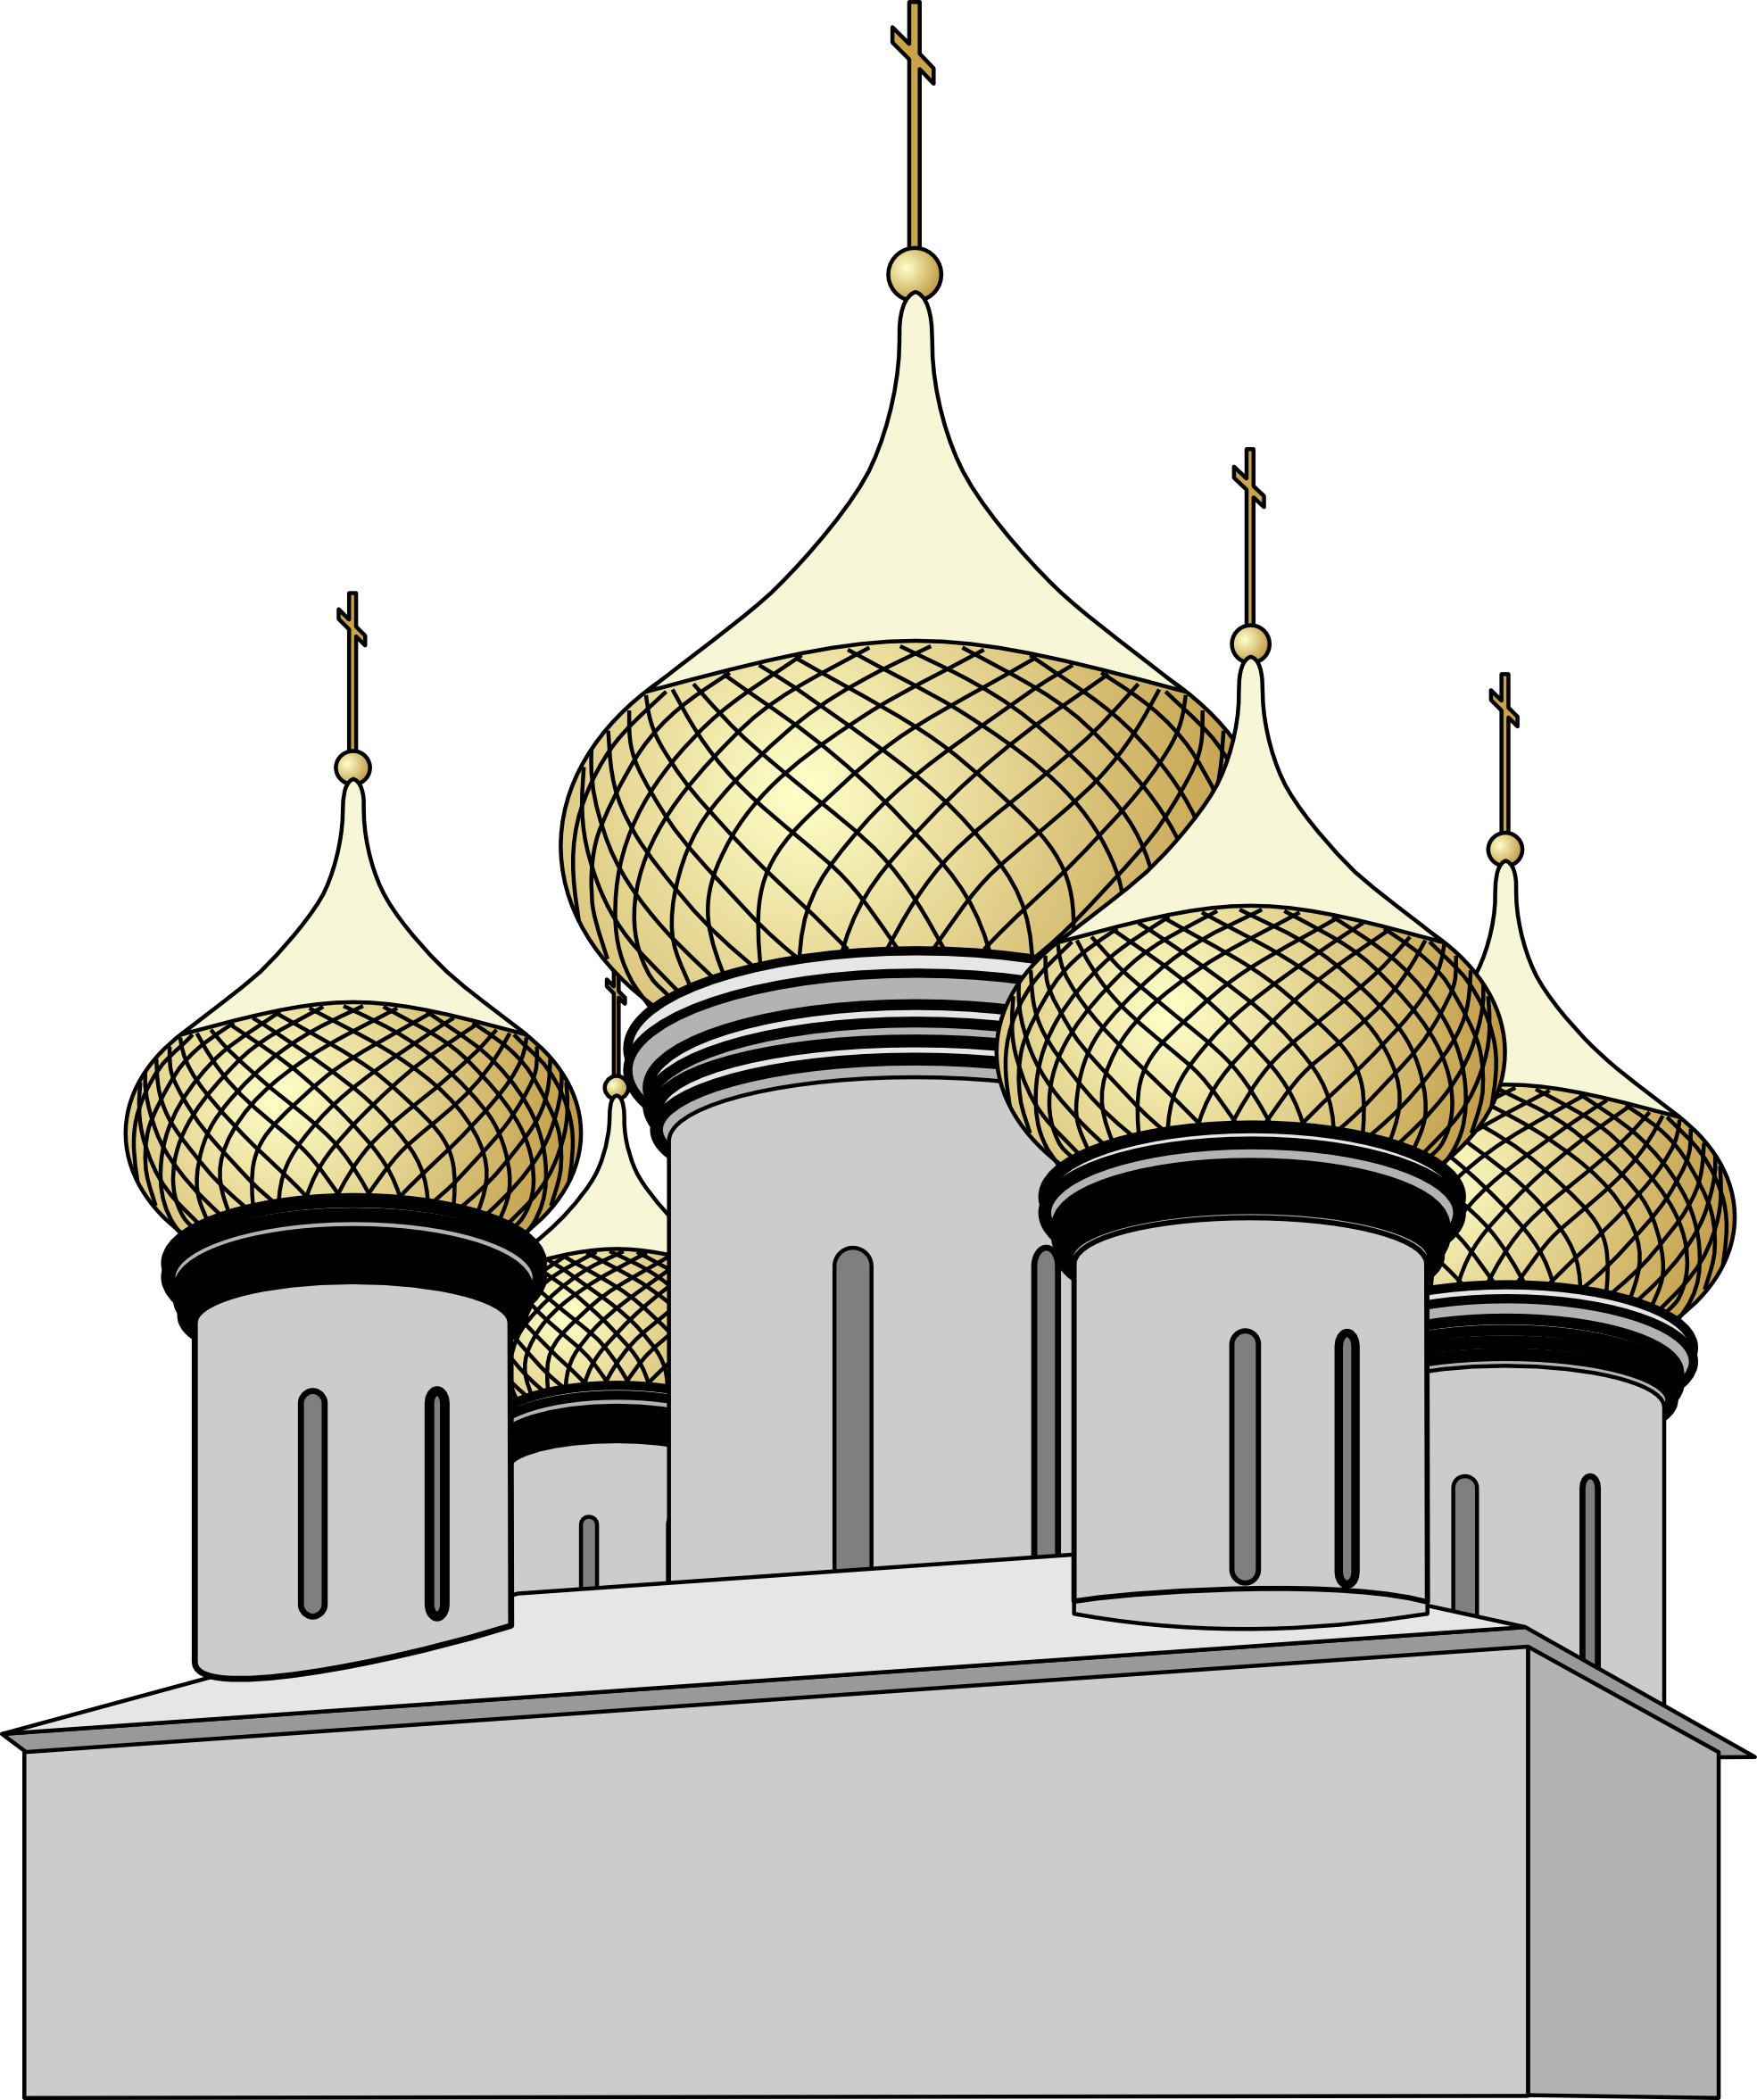 Mosque PNG, Mosque Transparent Background